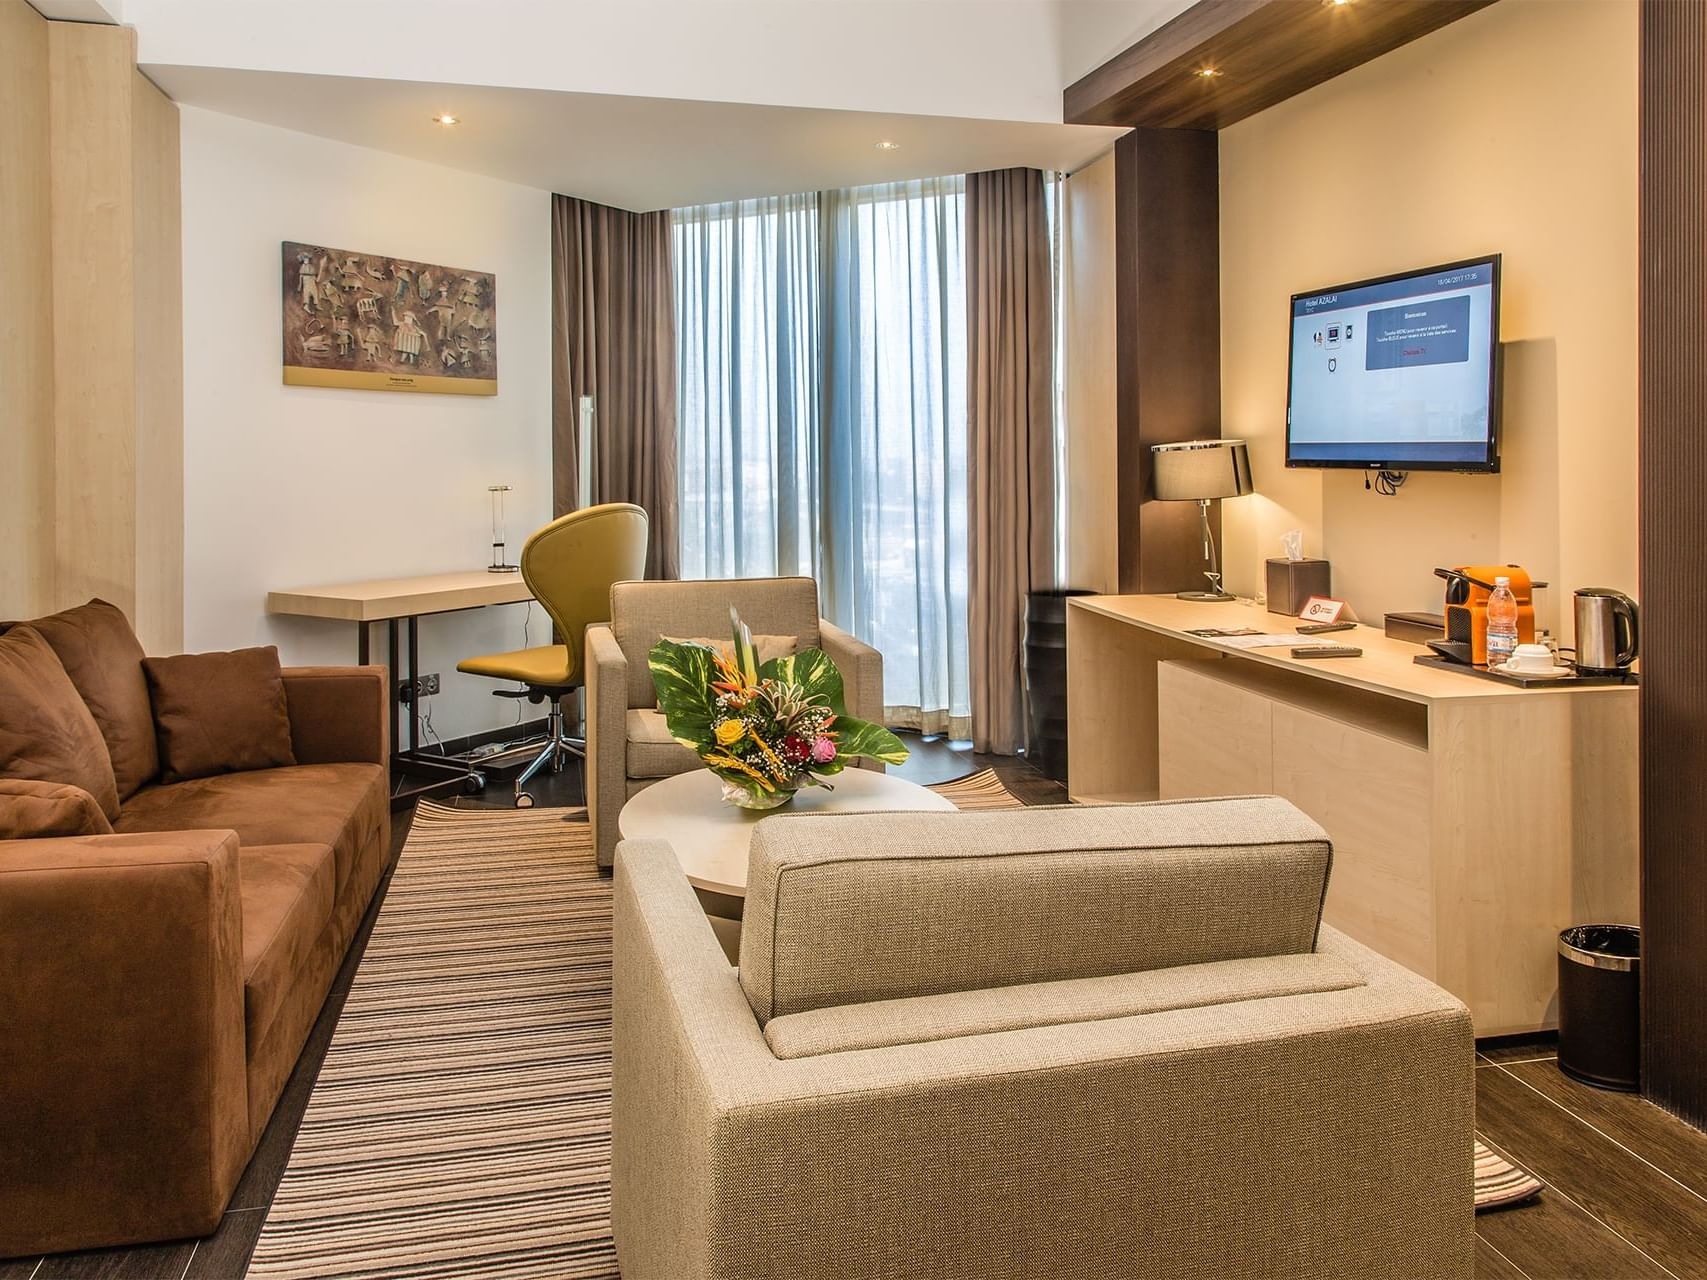 Superior room with comfortables sofas and tv